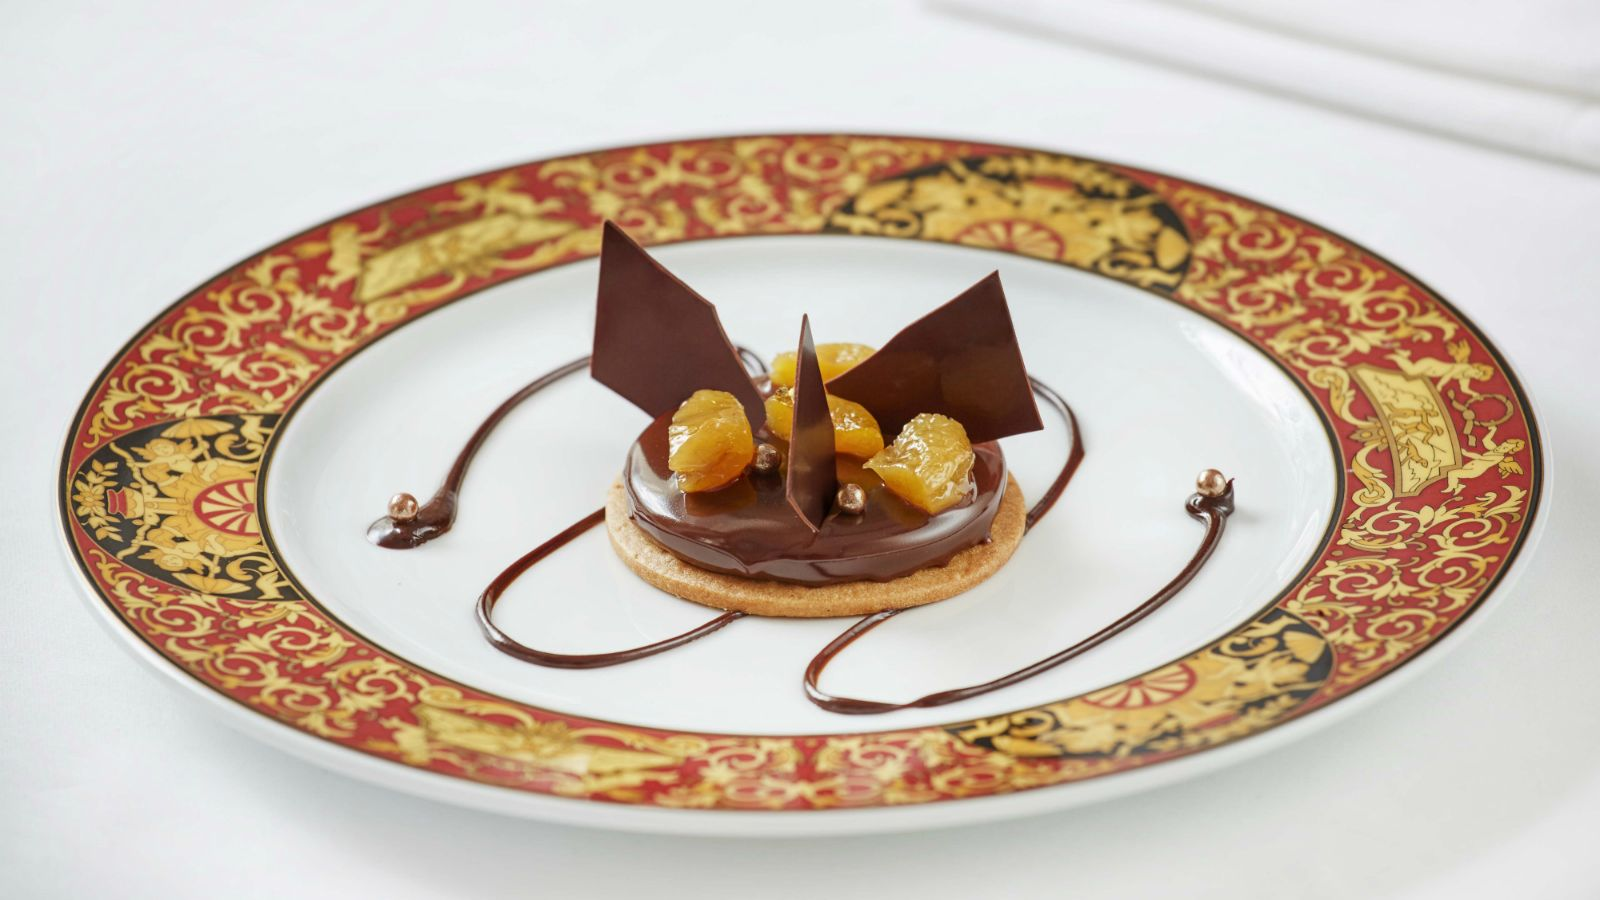 "=""Tarte-Tentation-by-Arnaud-Larher-for-Hotel-Grande-Bretagne-Athens-Luxury-Collection""/"